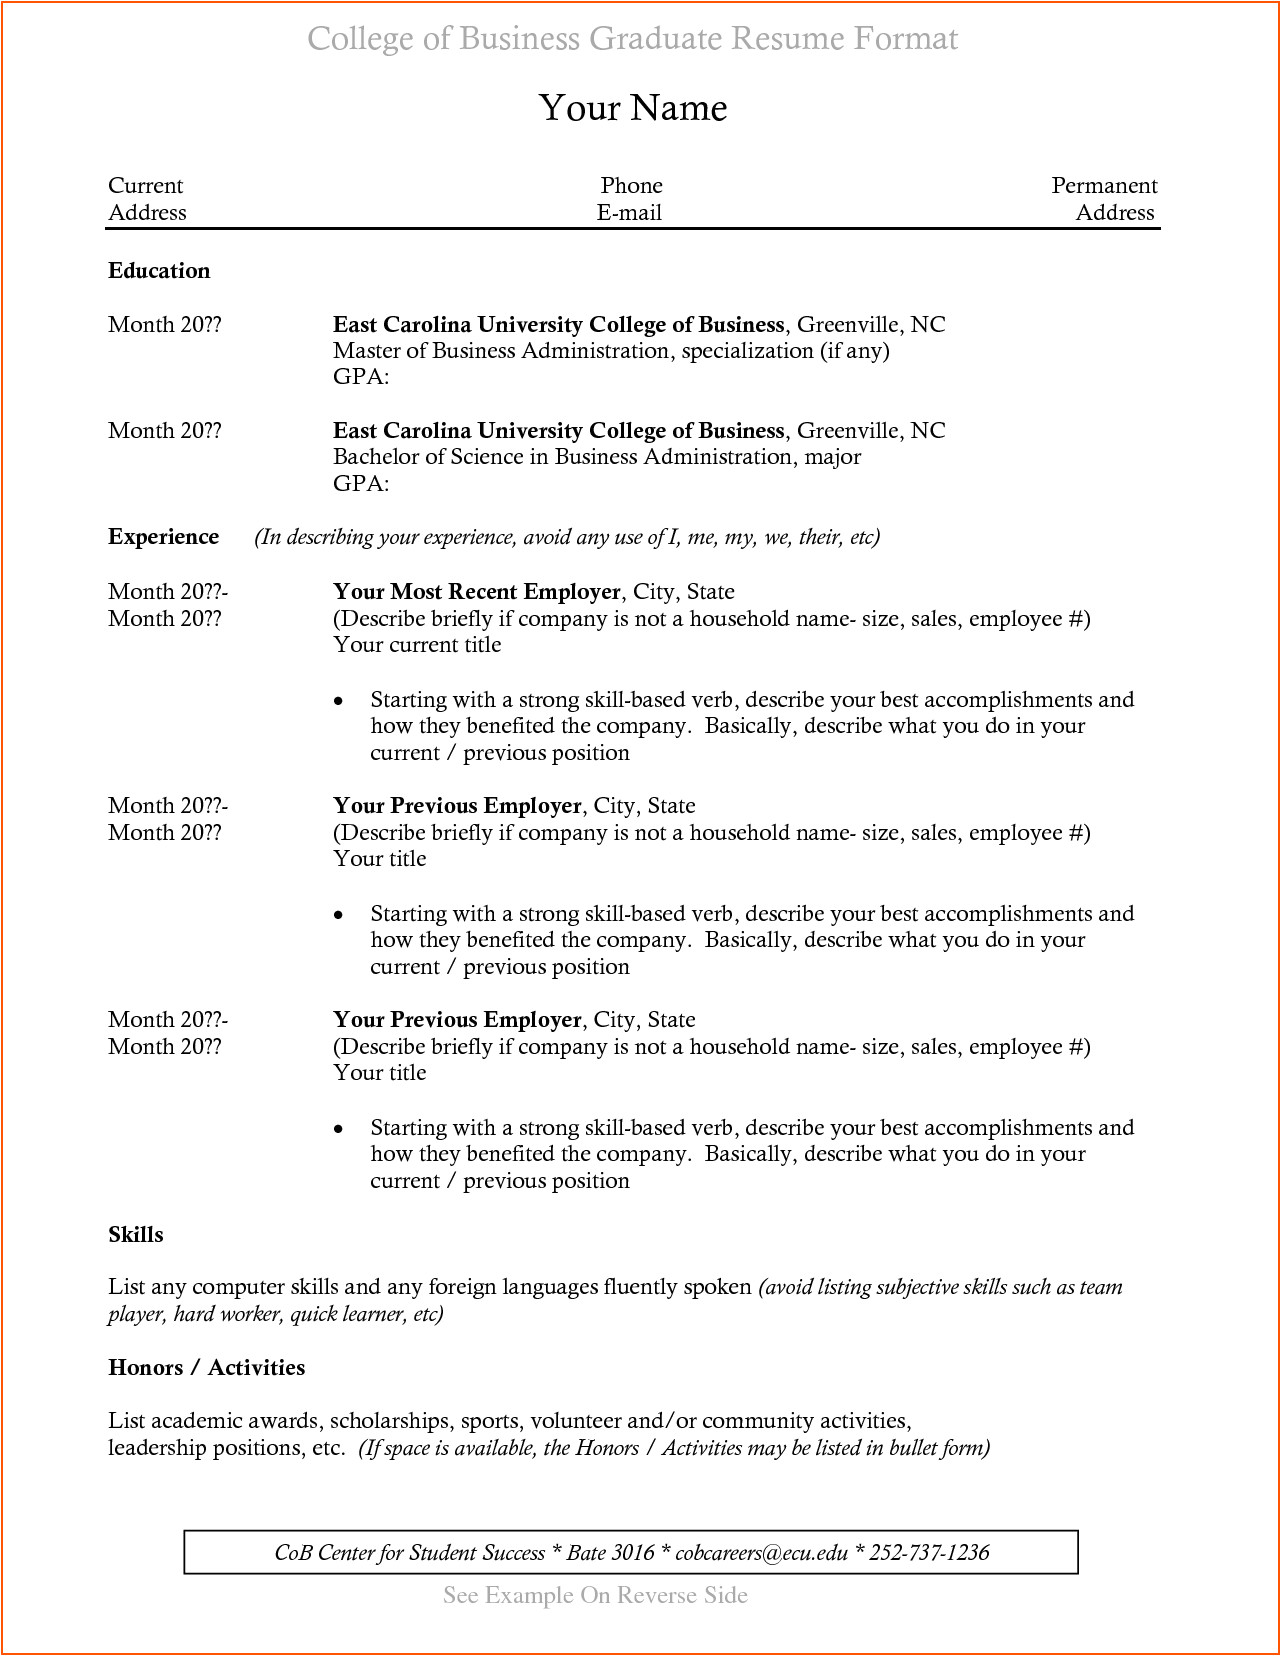 resumes for college graduates with no experience